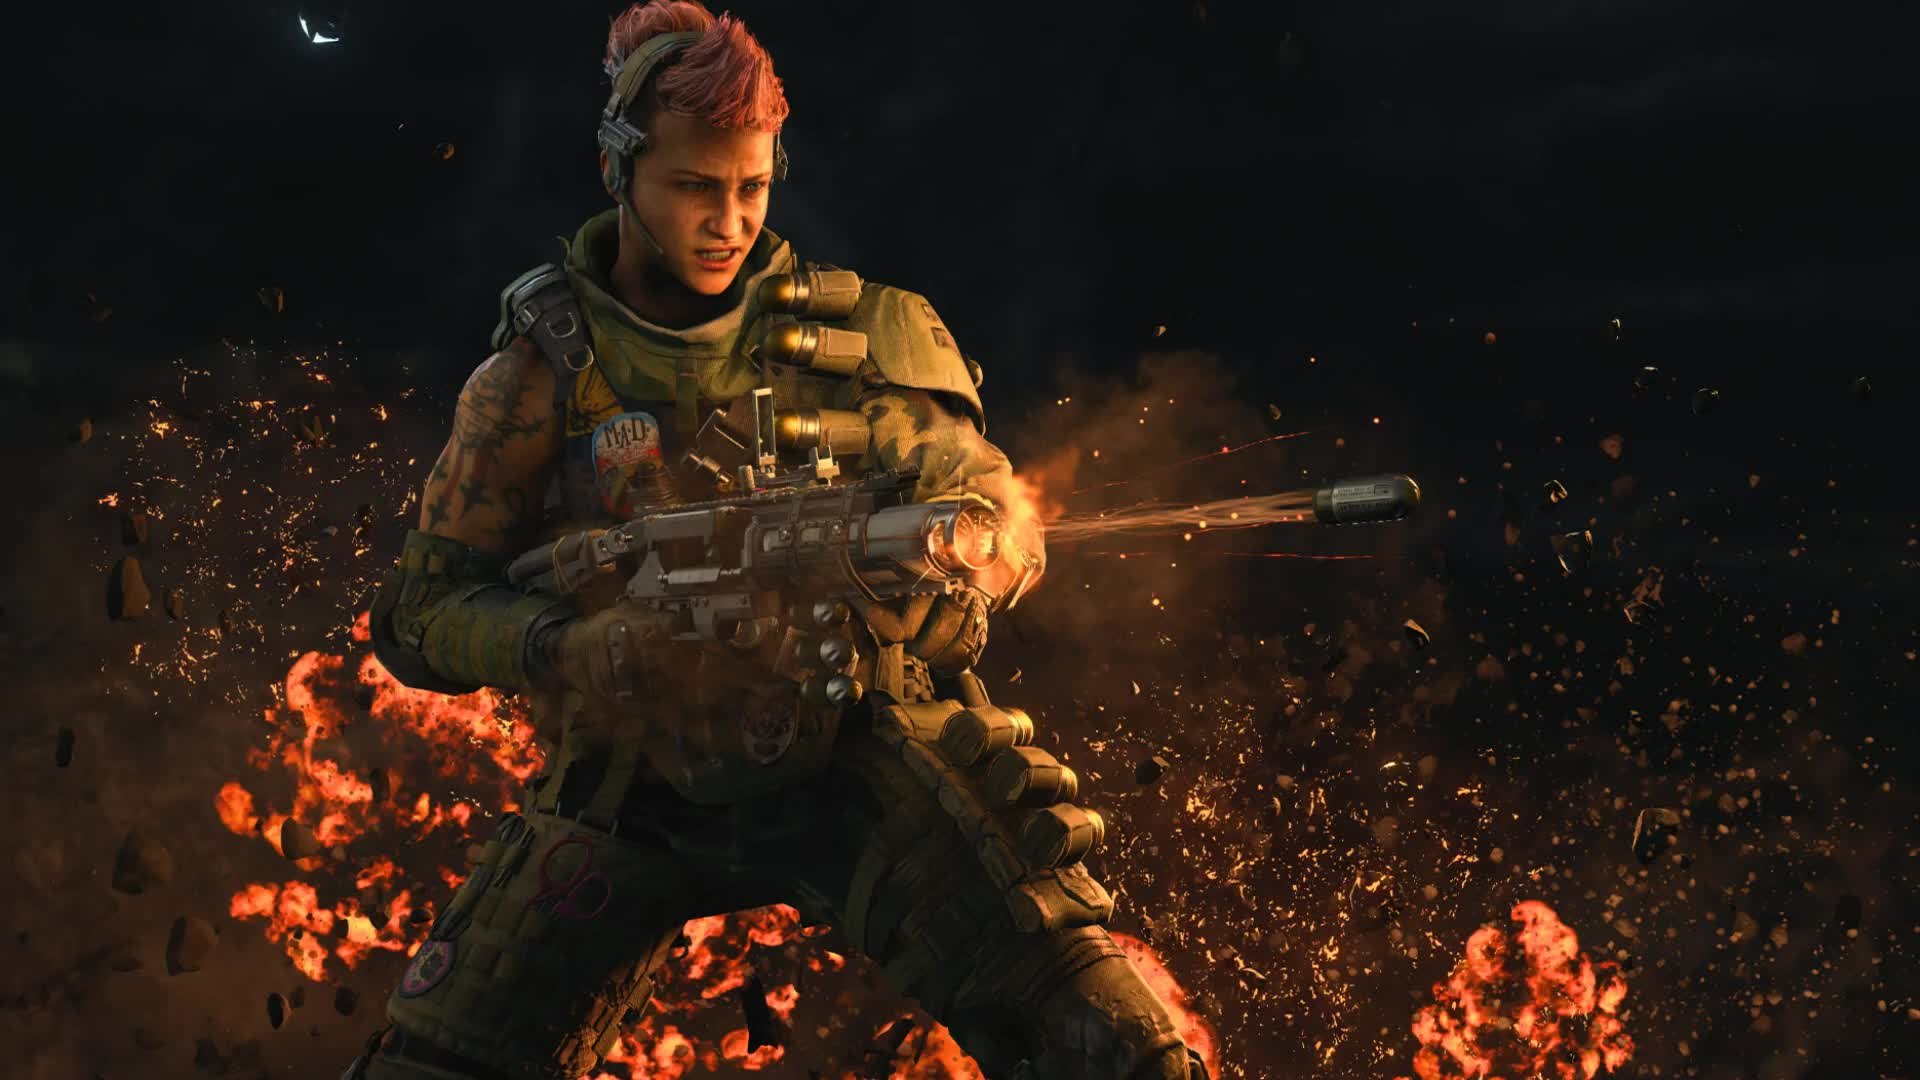 Call Of Duty Black Ops Iiii Wallpapers Top Free Call Of Duty